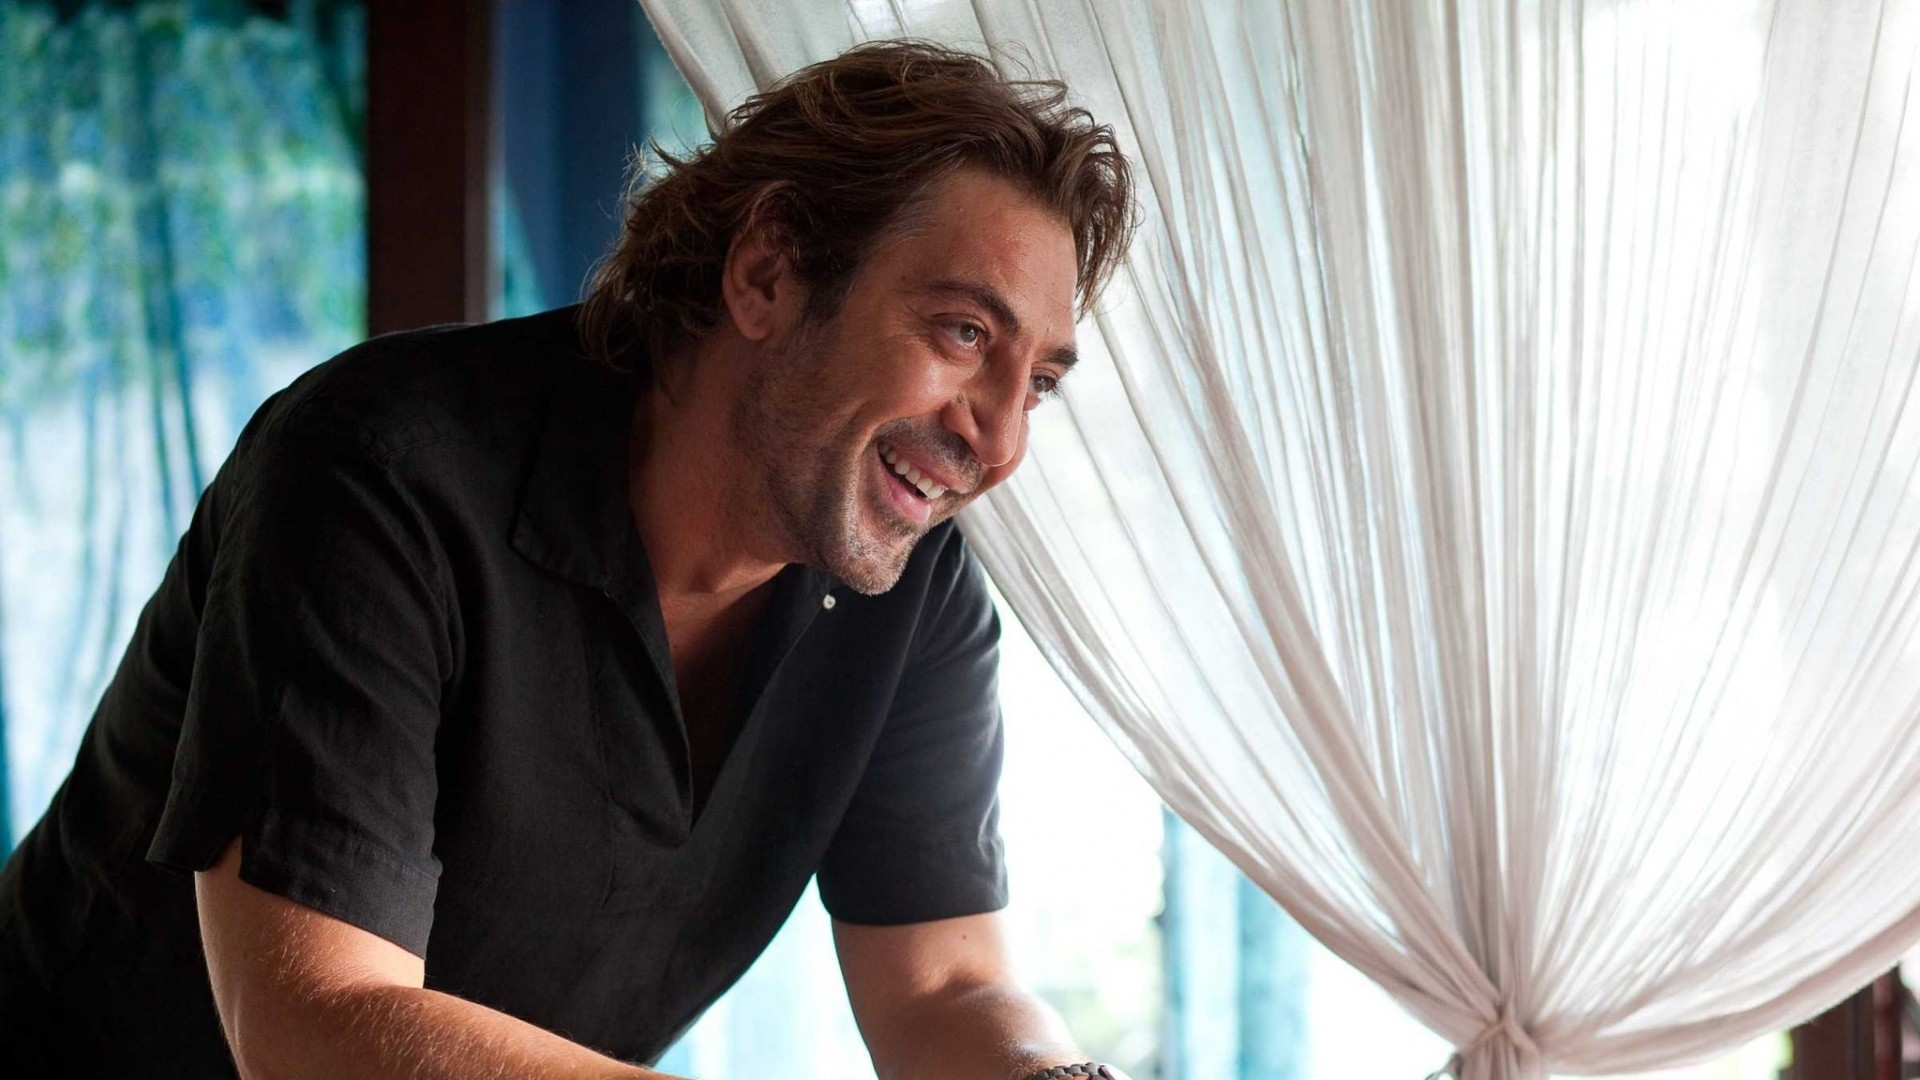 javier bardem smile curly t-shirt actor …